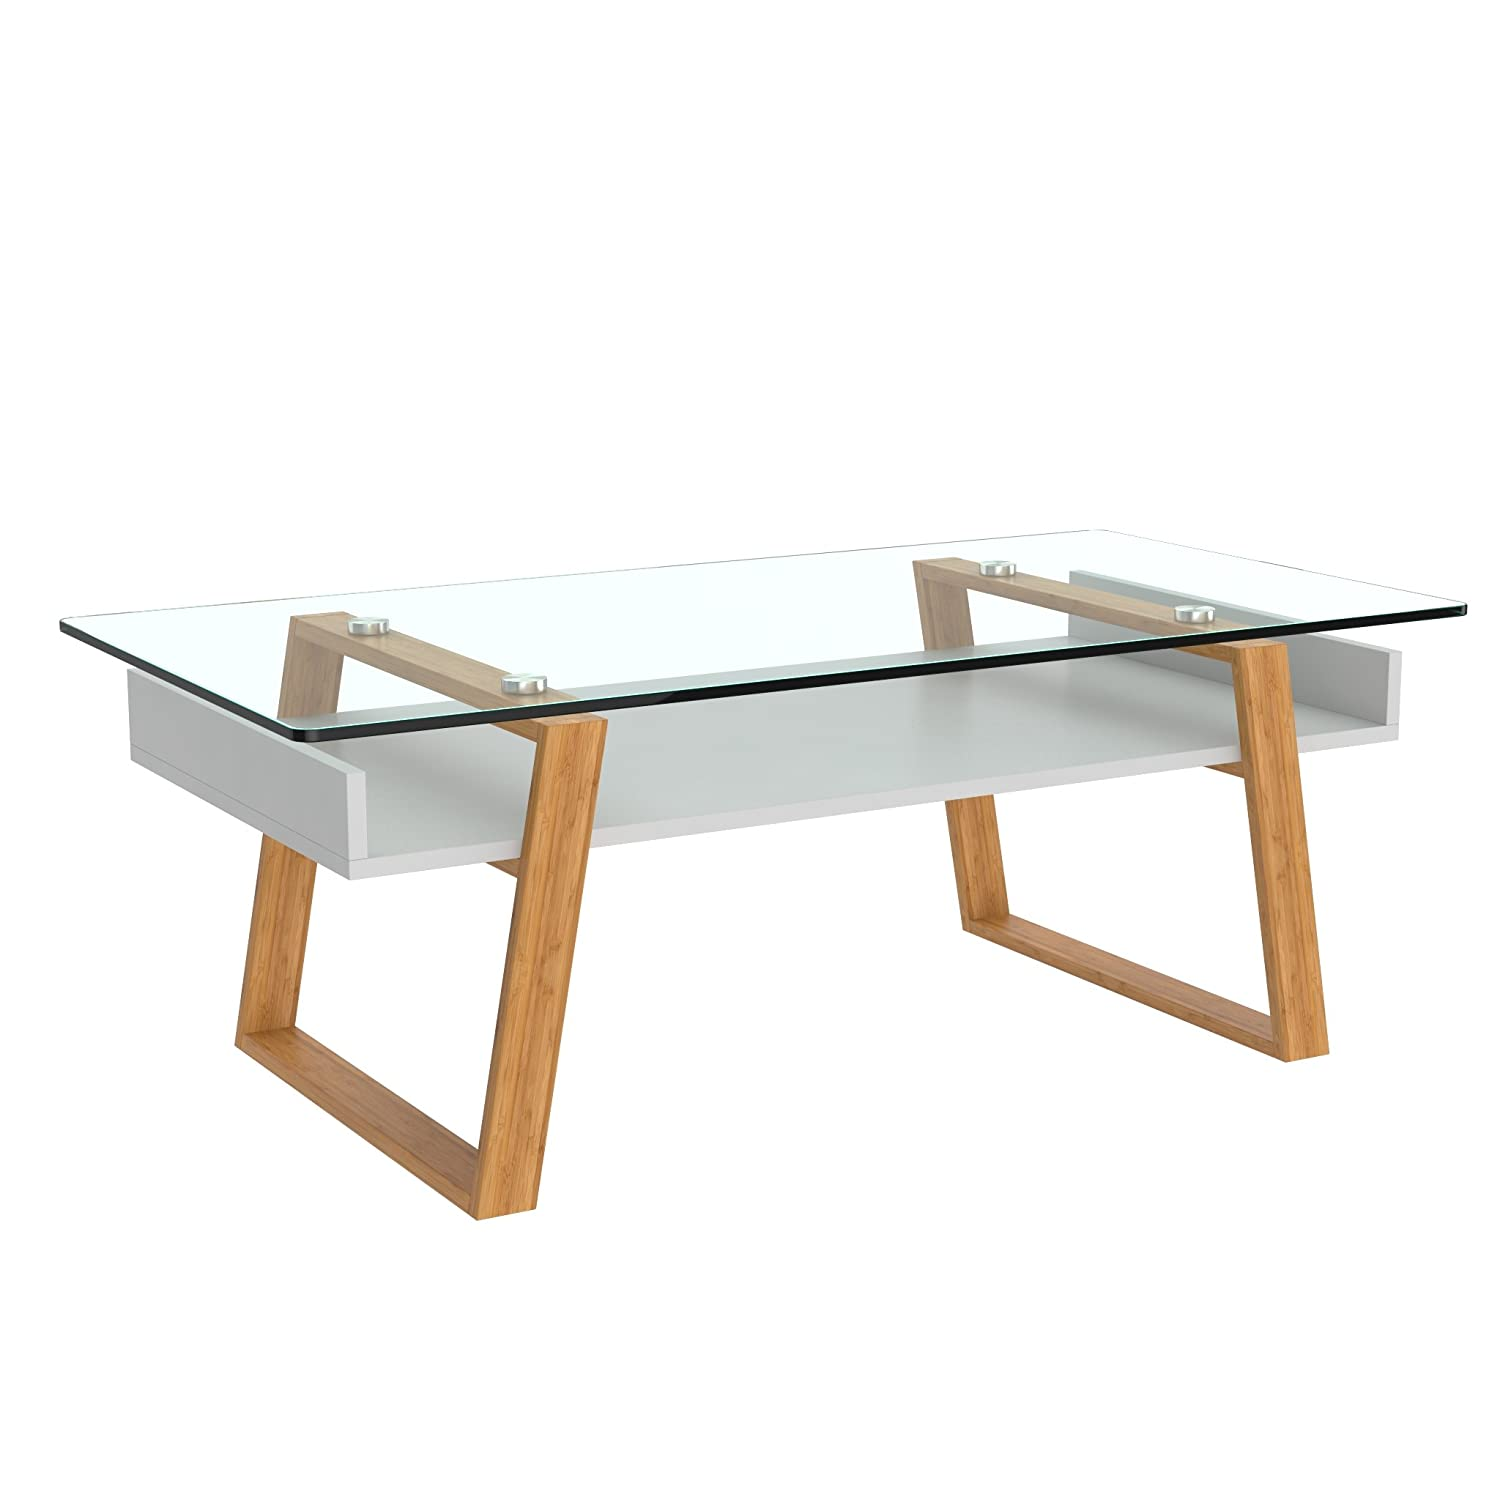 Contemporary Coffee Table.Bonvivo Designer Coffee Table Donatella Modern Coffee Table For Living Room White Coffee Table Coffee Or Side Table With Natural Wood Frame And